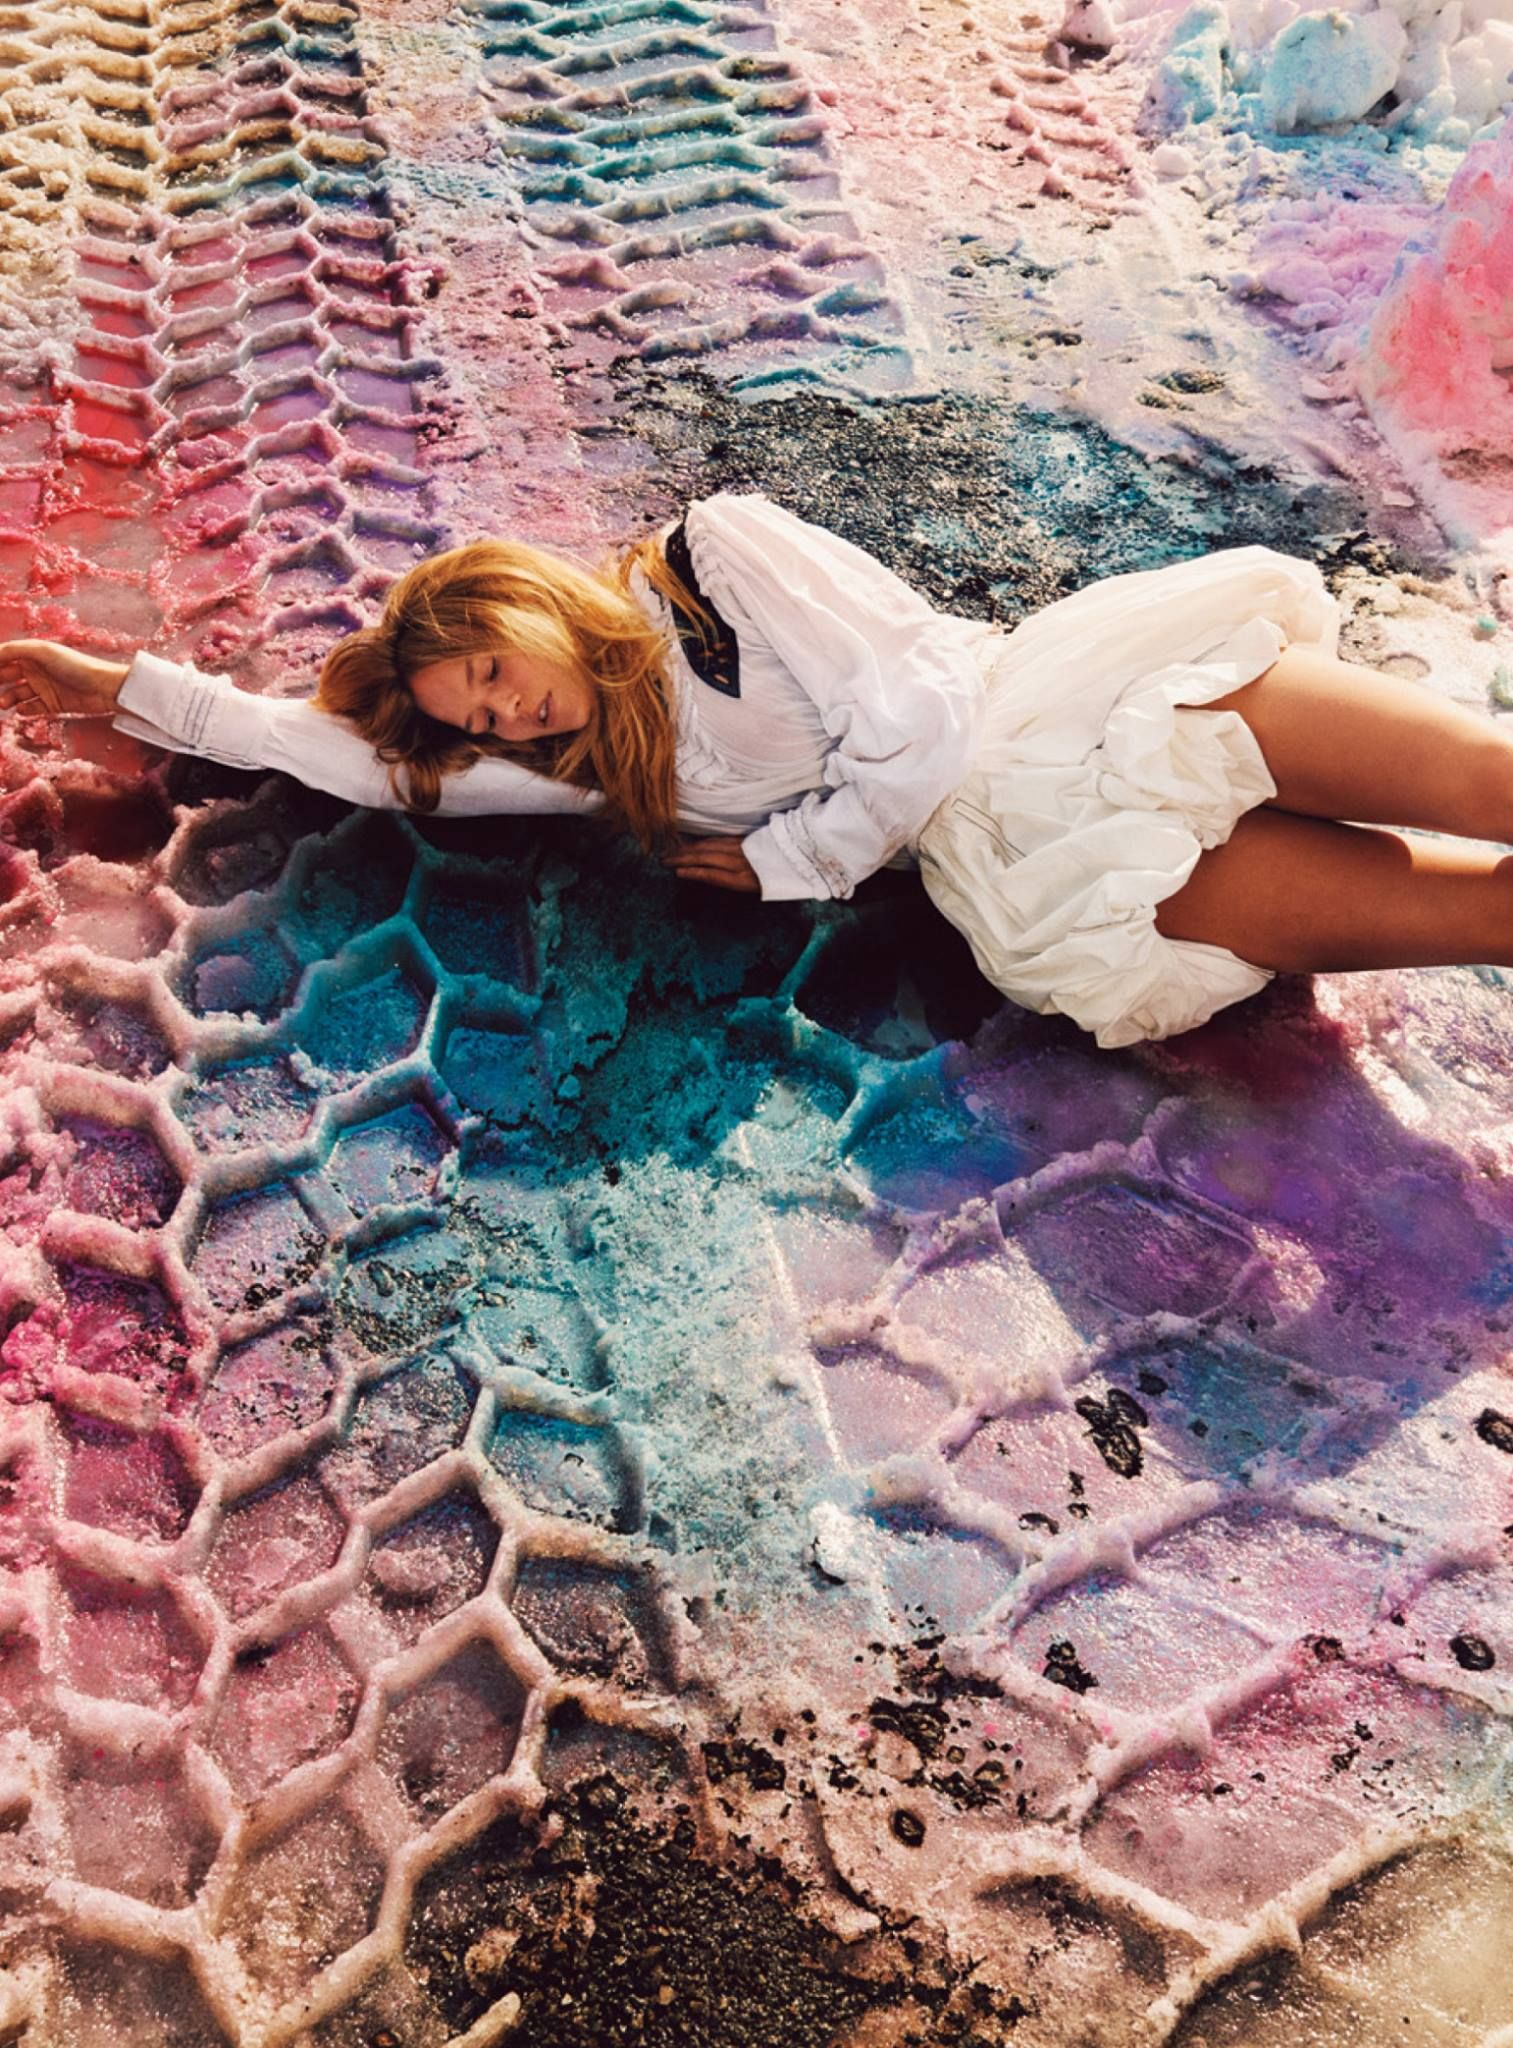 Anna Ewers photographed by Ryan McGinley, styled by Edward Enninful; W Magazine April 2016